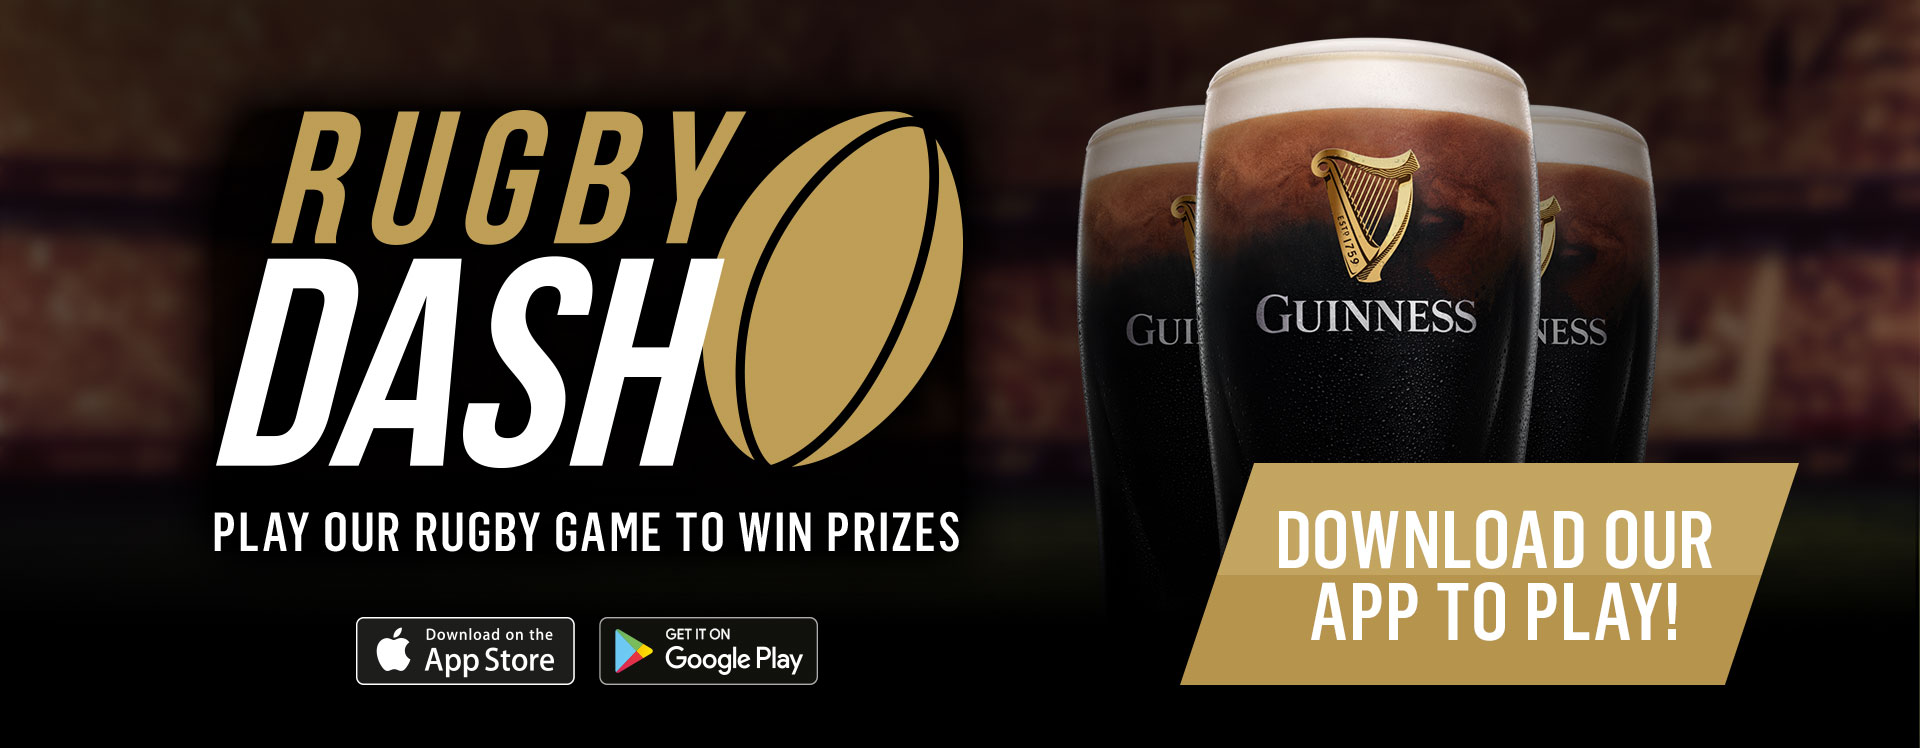 Rugby Dash Game - Win a free pint of Guinness with 6 Nations at Nicholson's